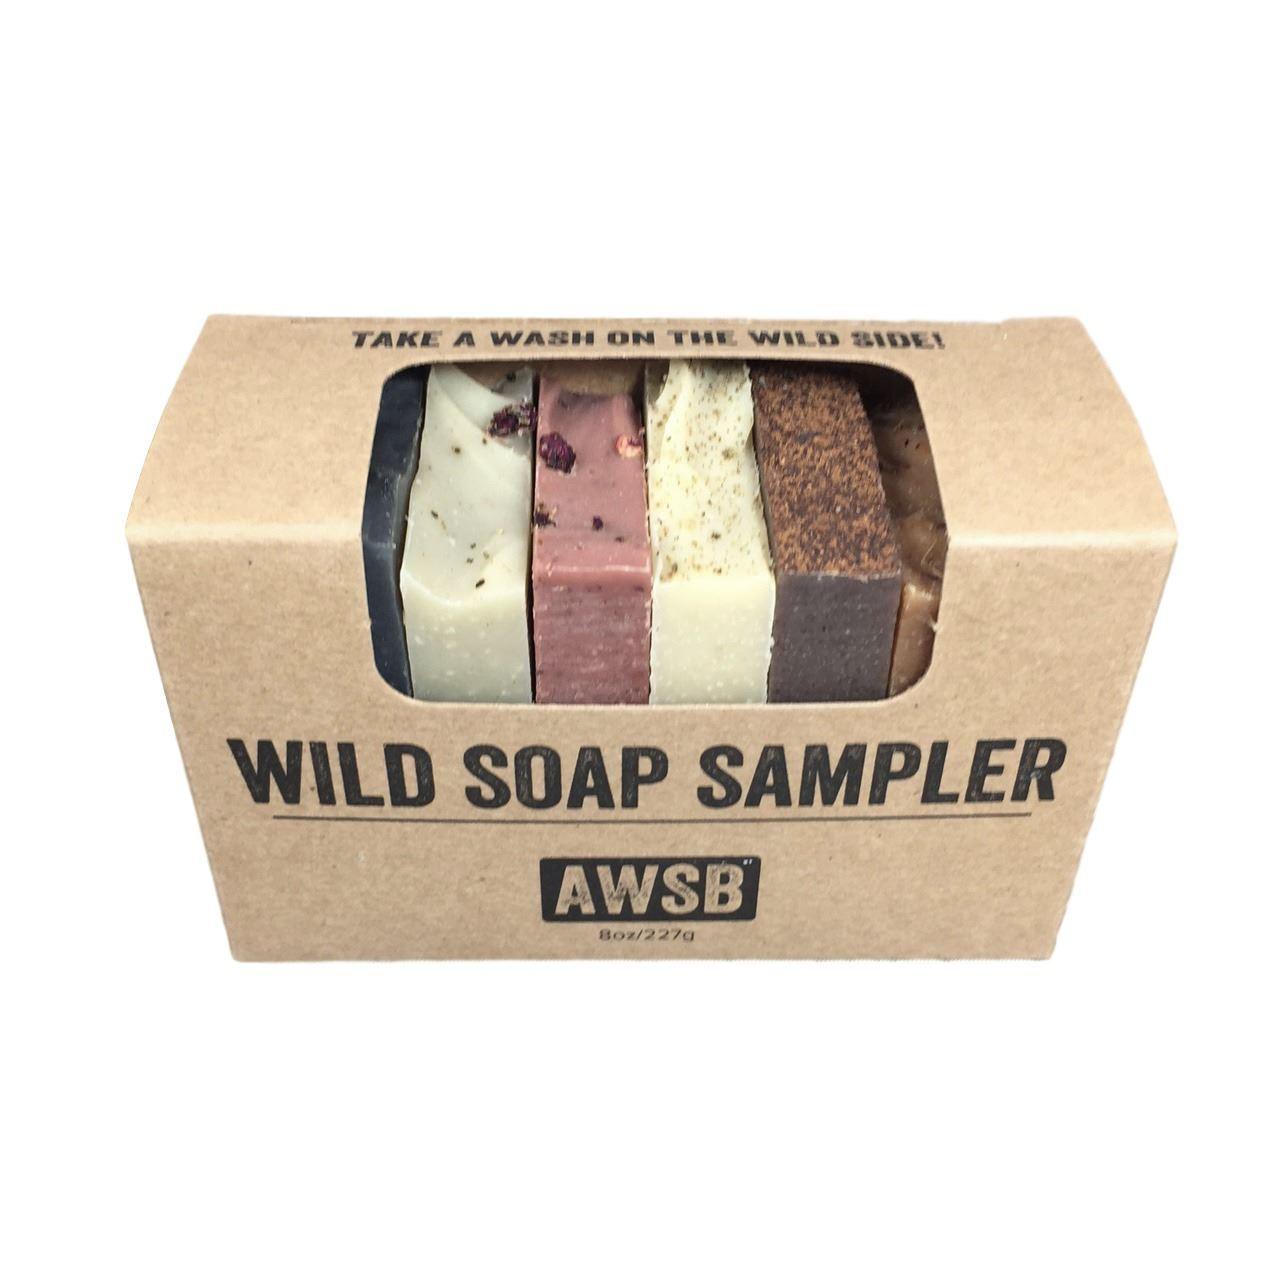 wild soap sampler - SAMP